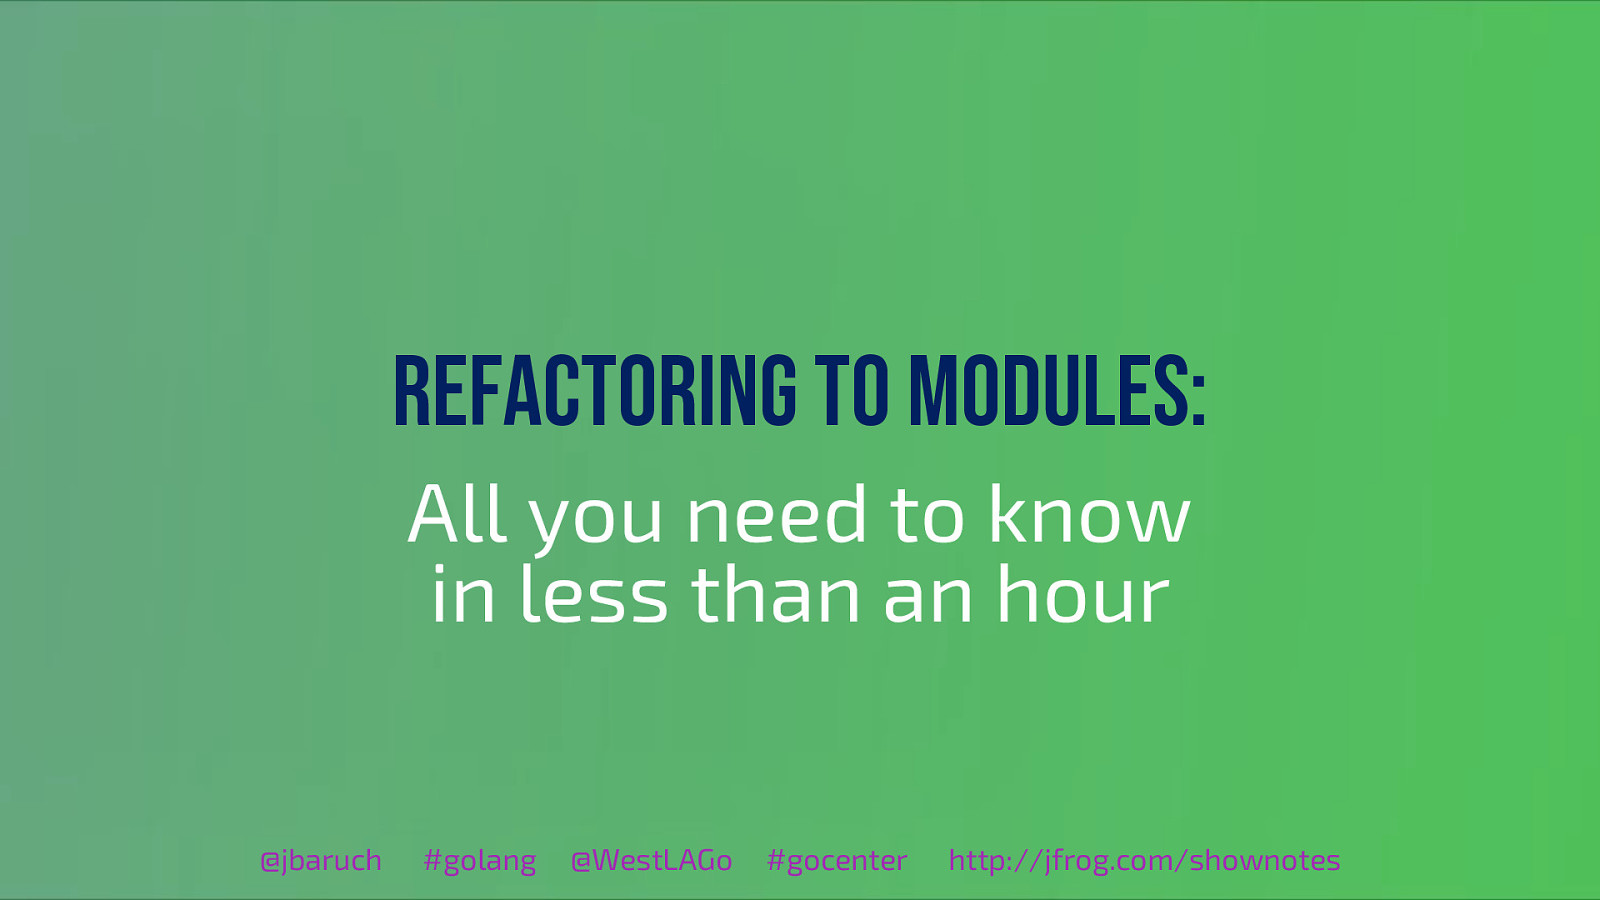 Go Modules: Why and how – all you need to know in less than an hour